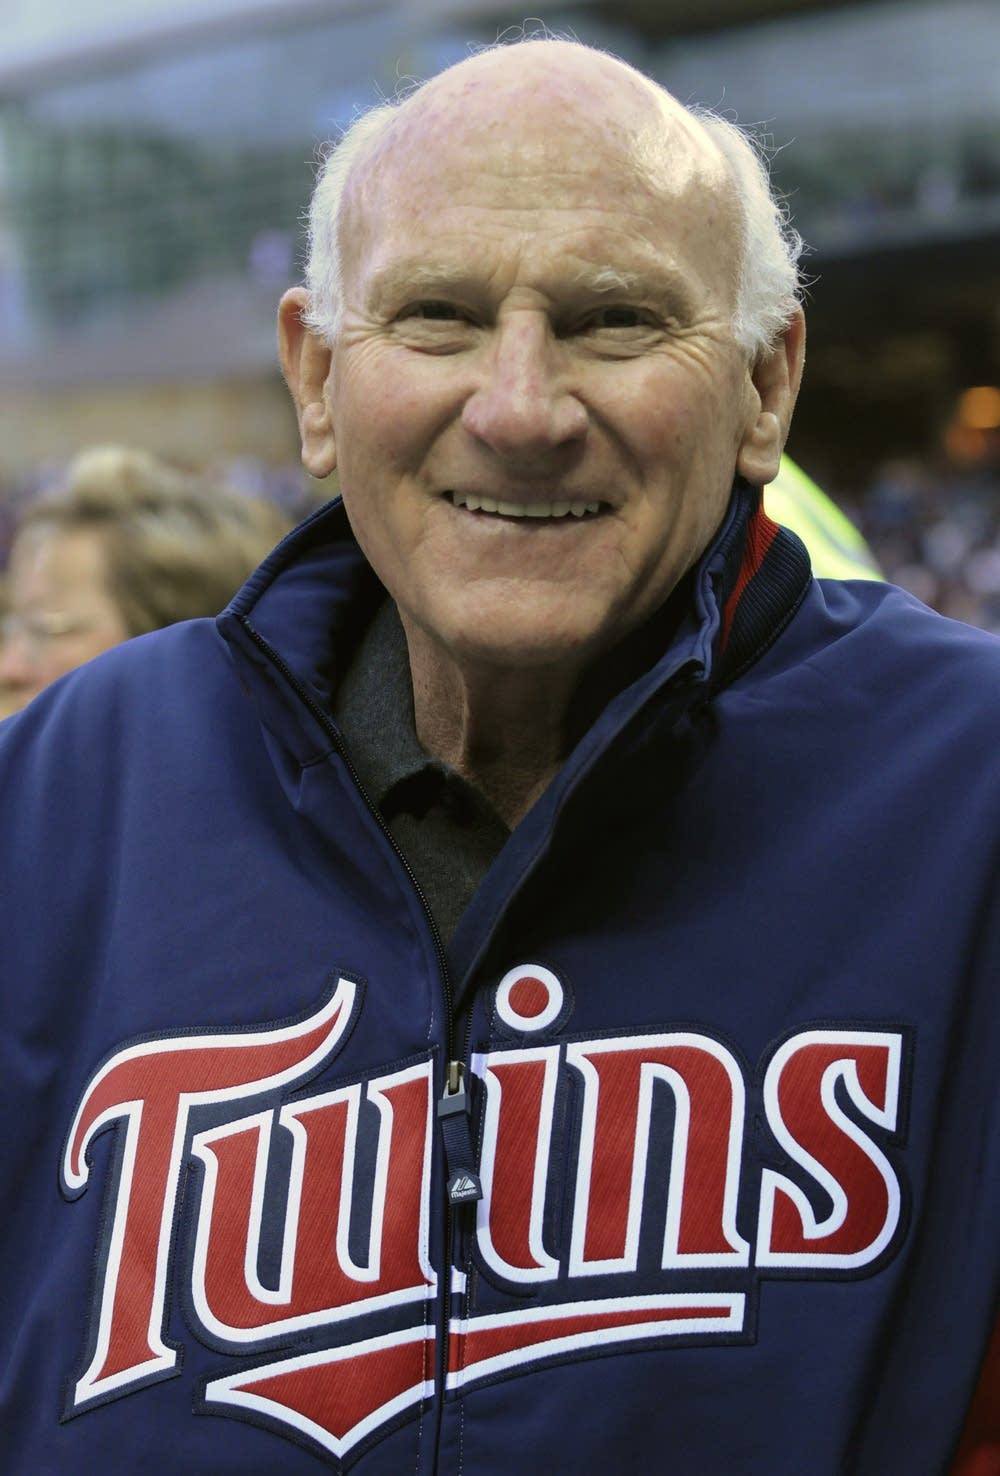 Killebrew in 2010